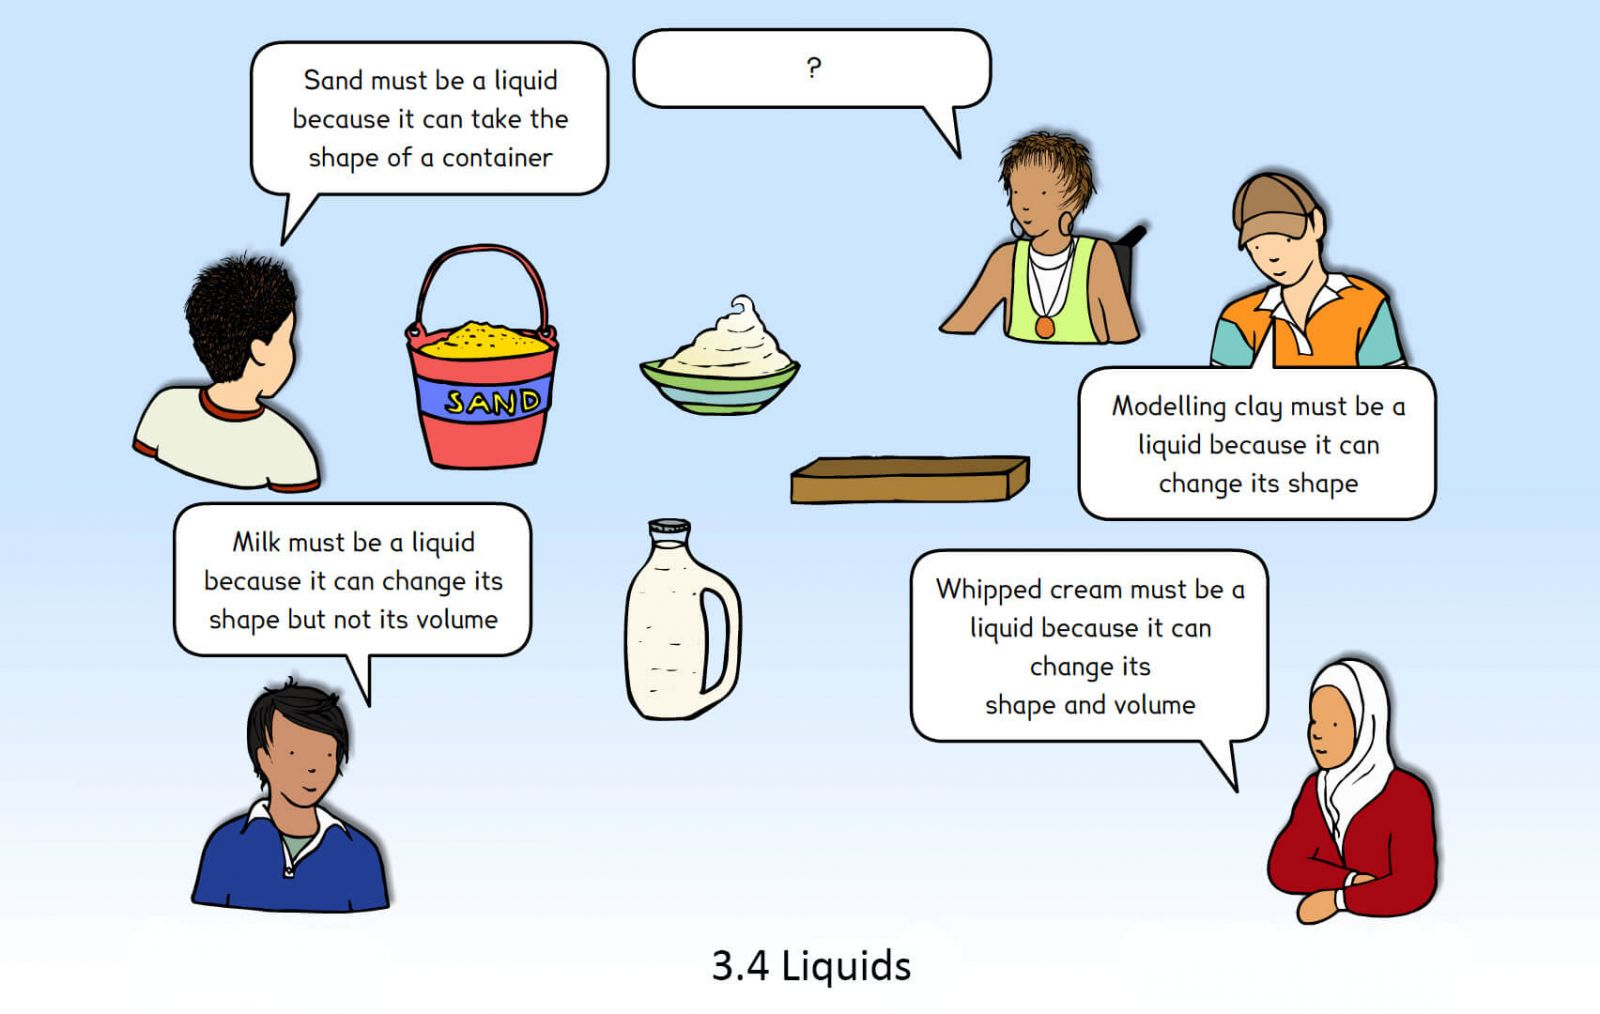 Image of a concept cartoon in which children share their observations about different materials and what state of matter they might be